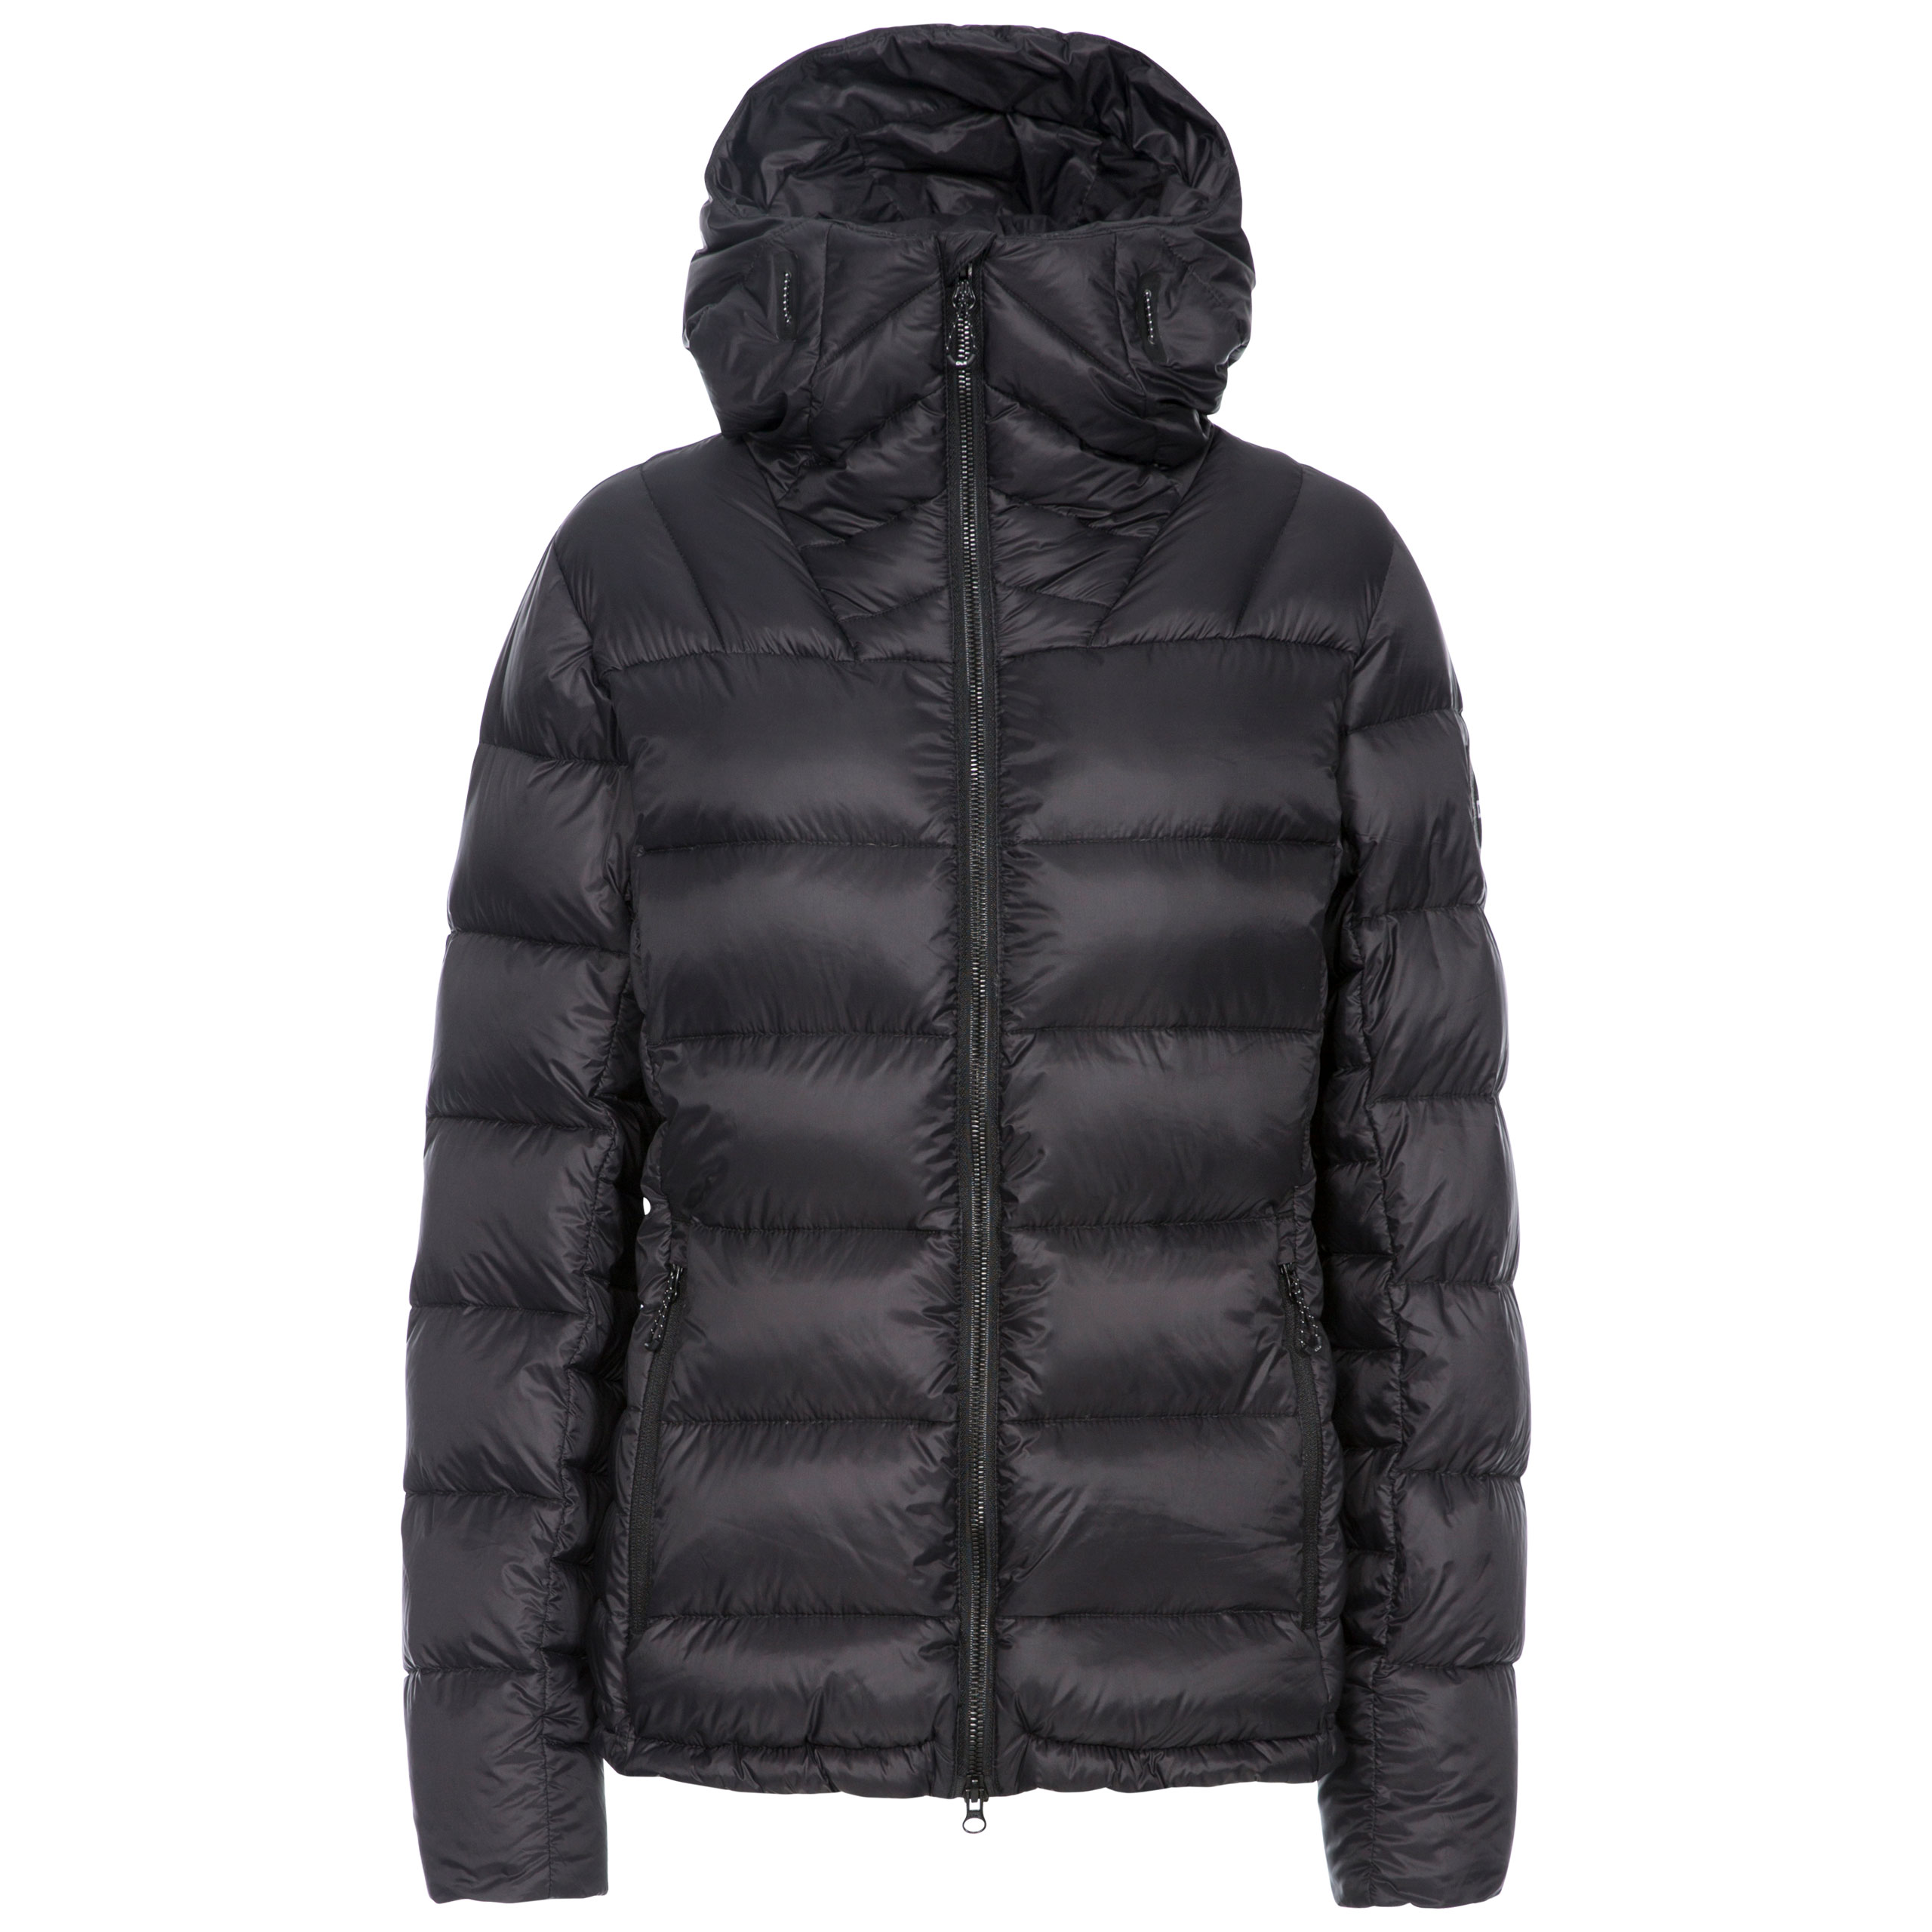 DLX-Pedley-Womens-Down-Jacket-DLX-Puffer-In-Black-With-Hood thumbnail 4